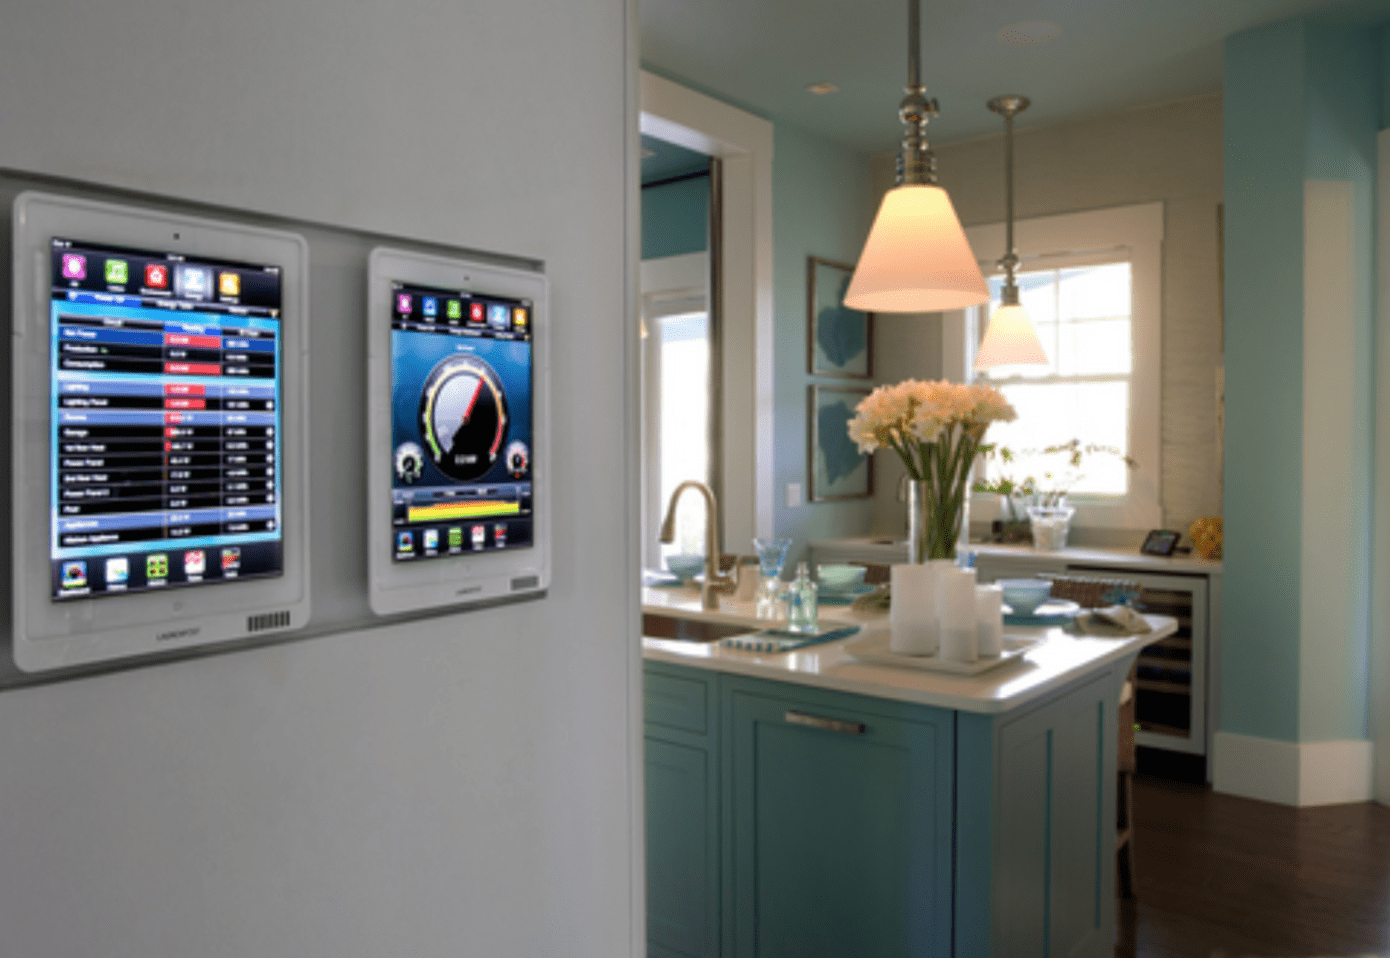 5 Reasons to Automate Your Home